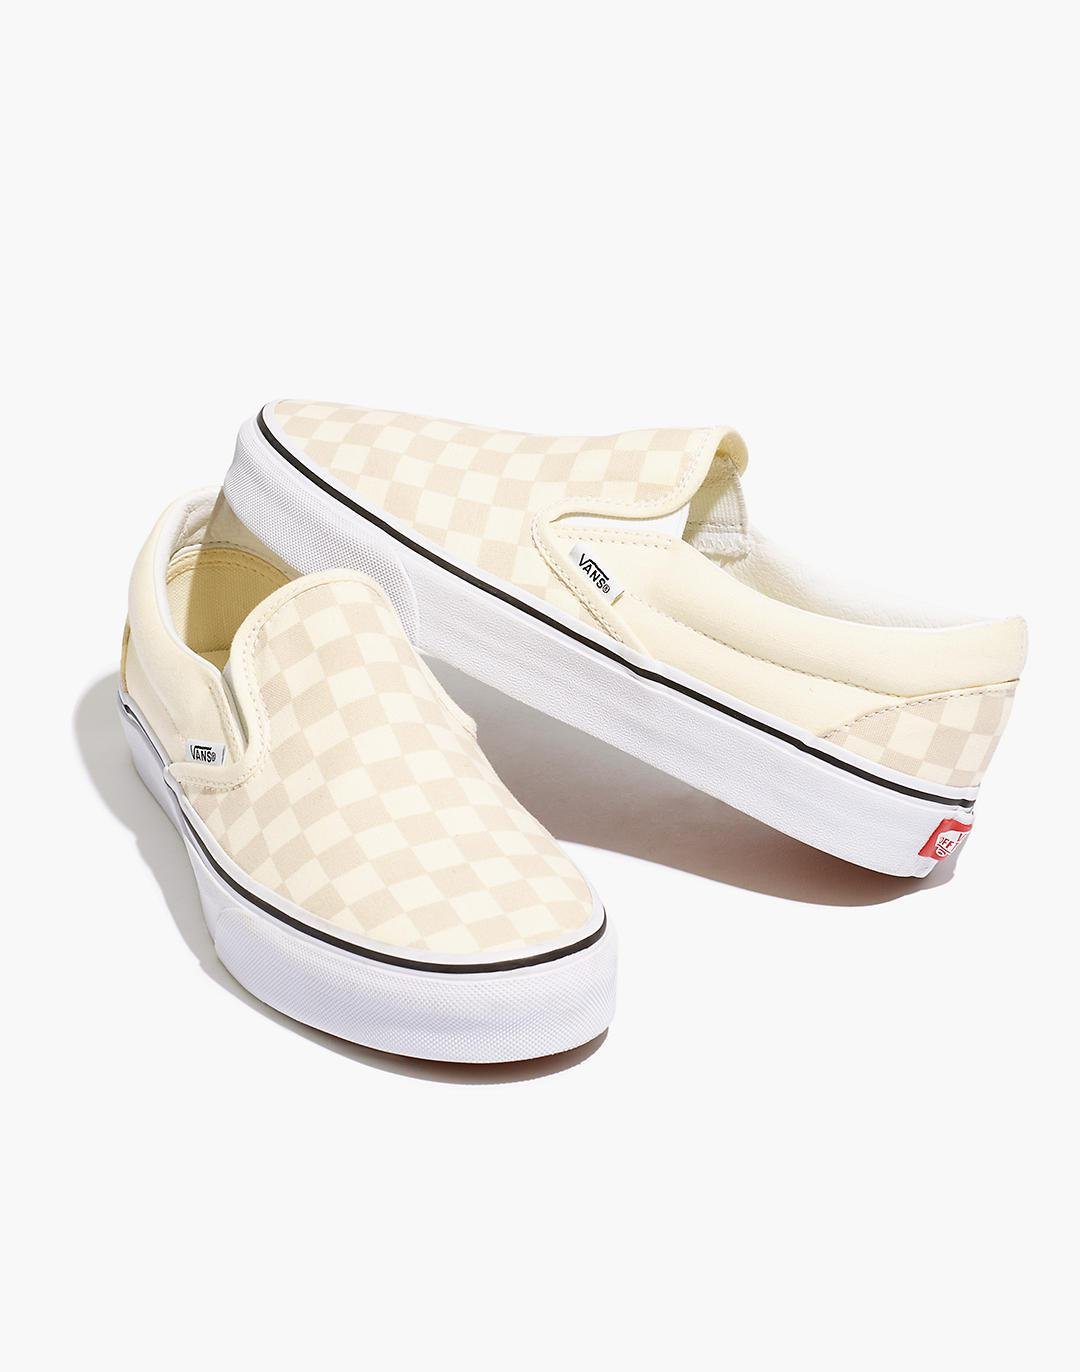 Vans® Unisex Classic Slip-On Sneakers in White Canvas